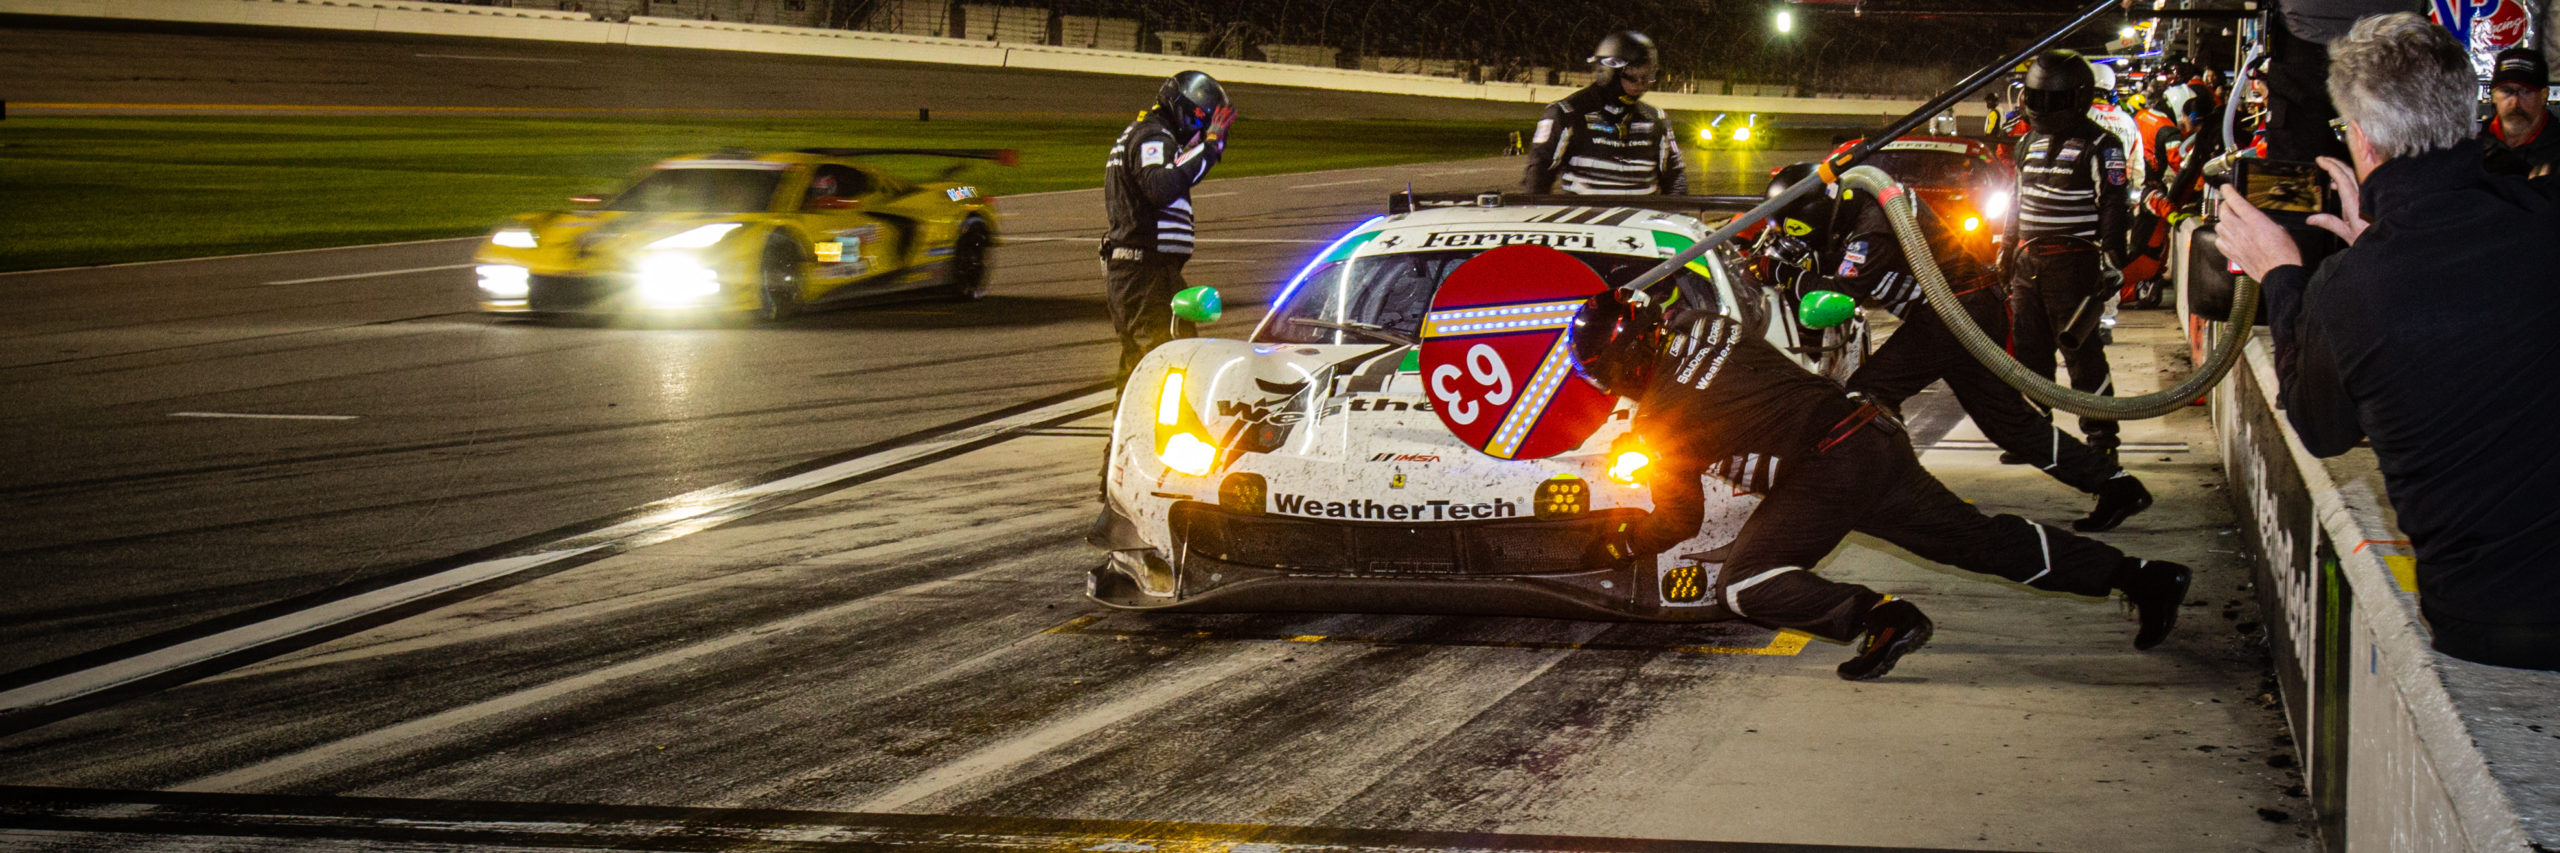 Rolex 24 at Daytona slide 1